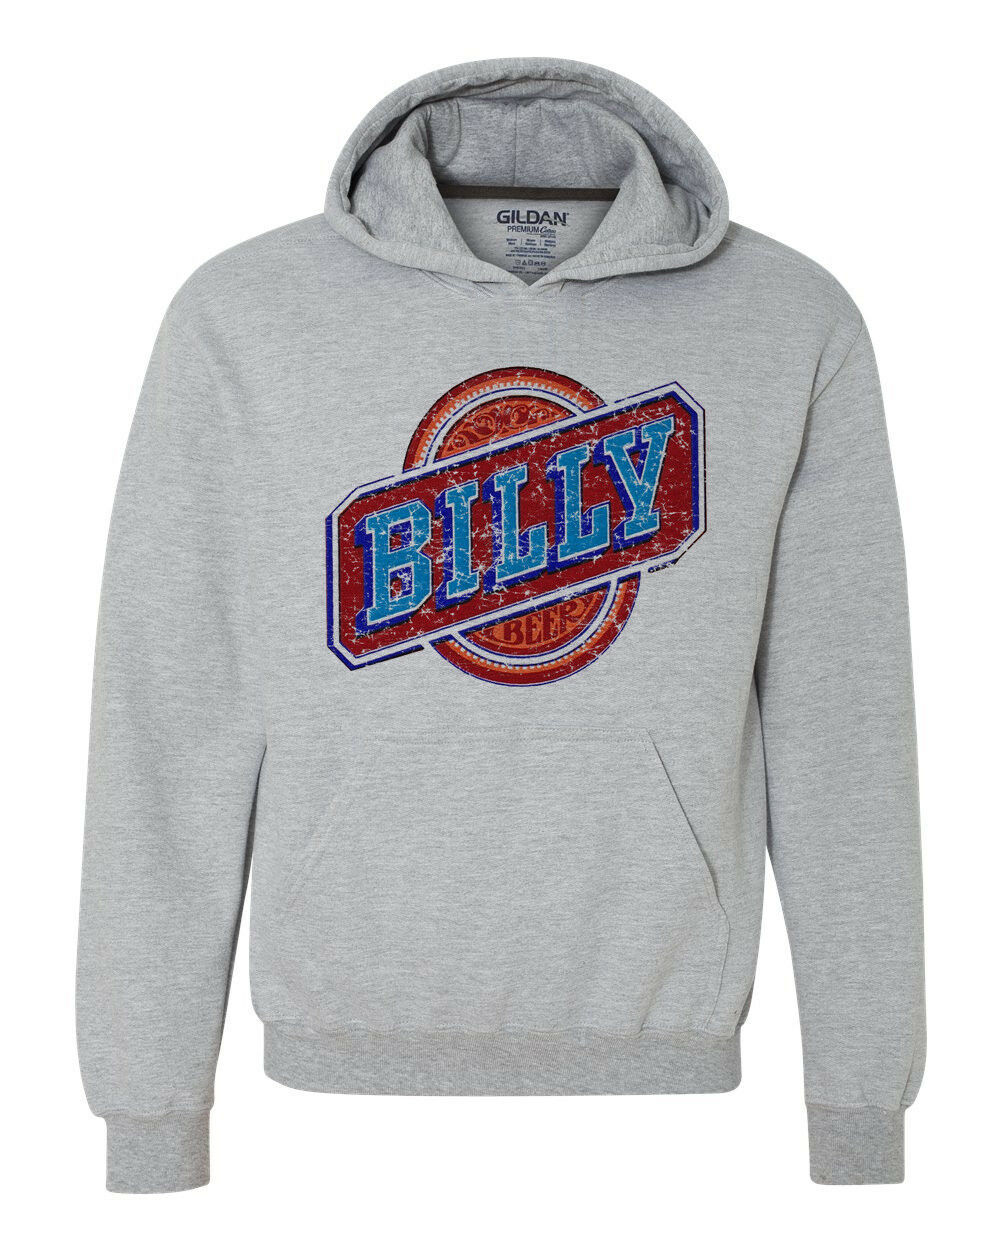 Billy Beer Hoodie retro vintage style distressed print grey graphic tee shirt